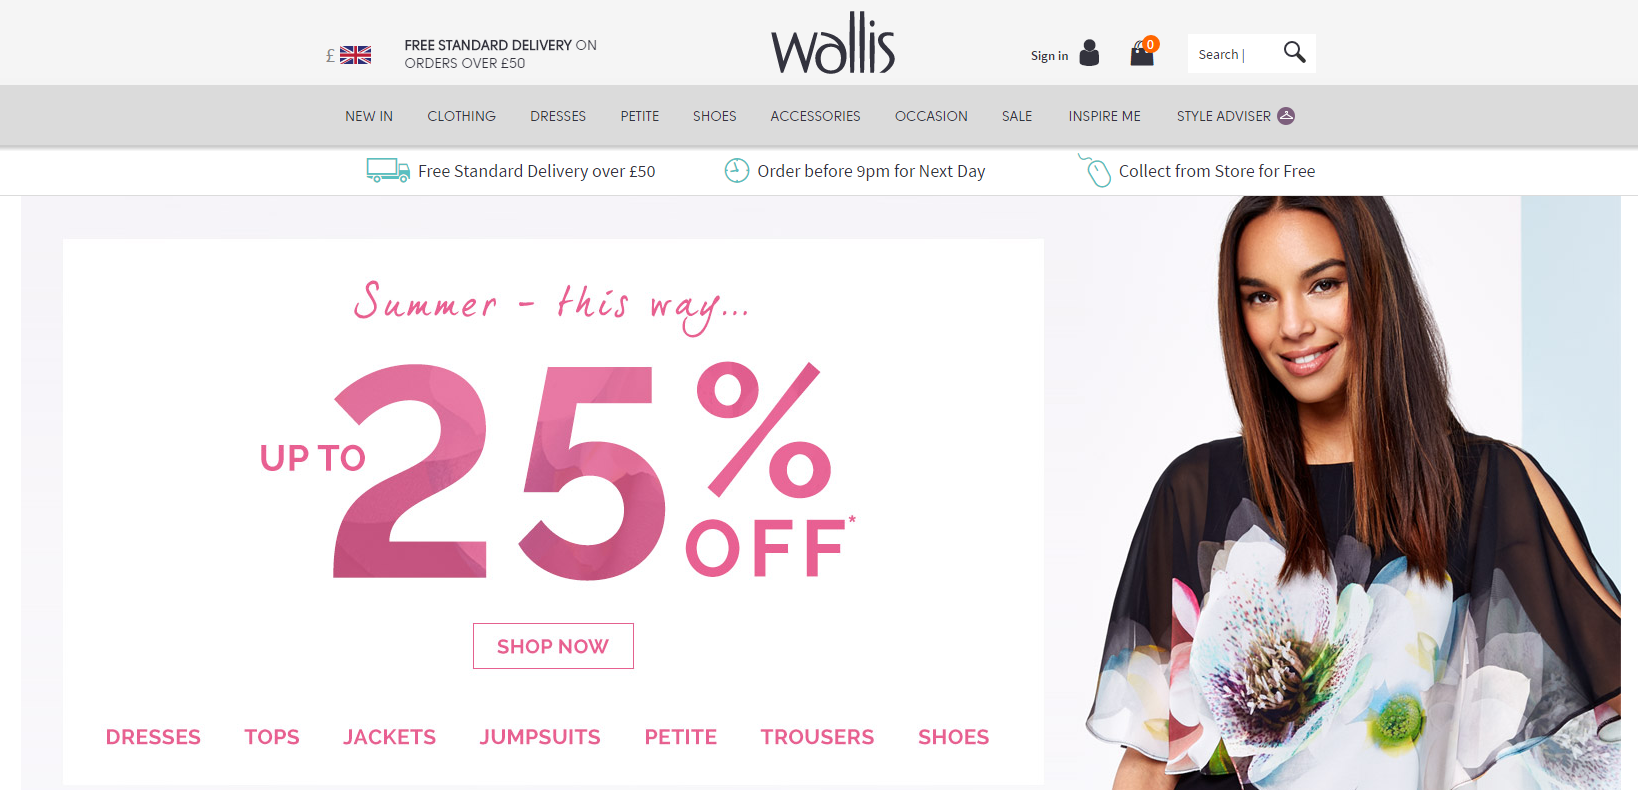 Wallis Voucher Codes. Get the best high-street fashion discounts with a Wallis discount code from The Independent. Make use of our tried and tested Wallis voucher code to get attractive discounts.